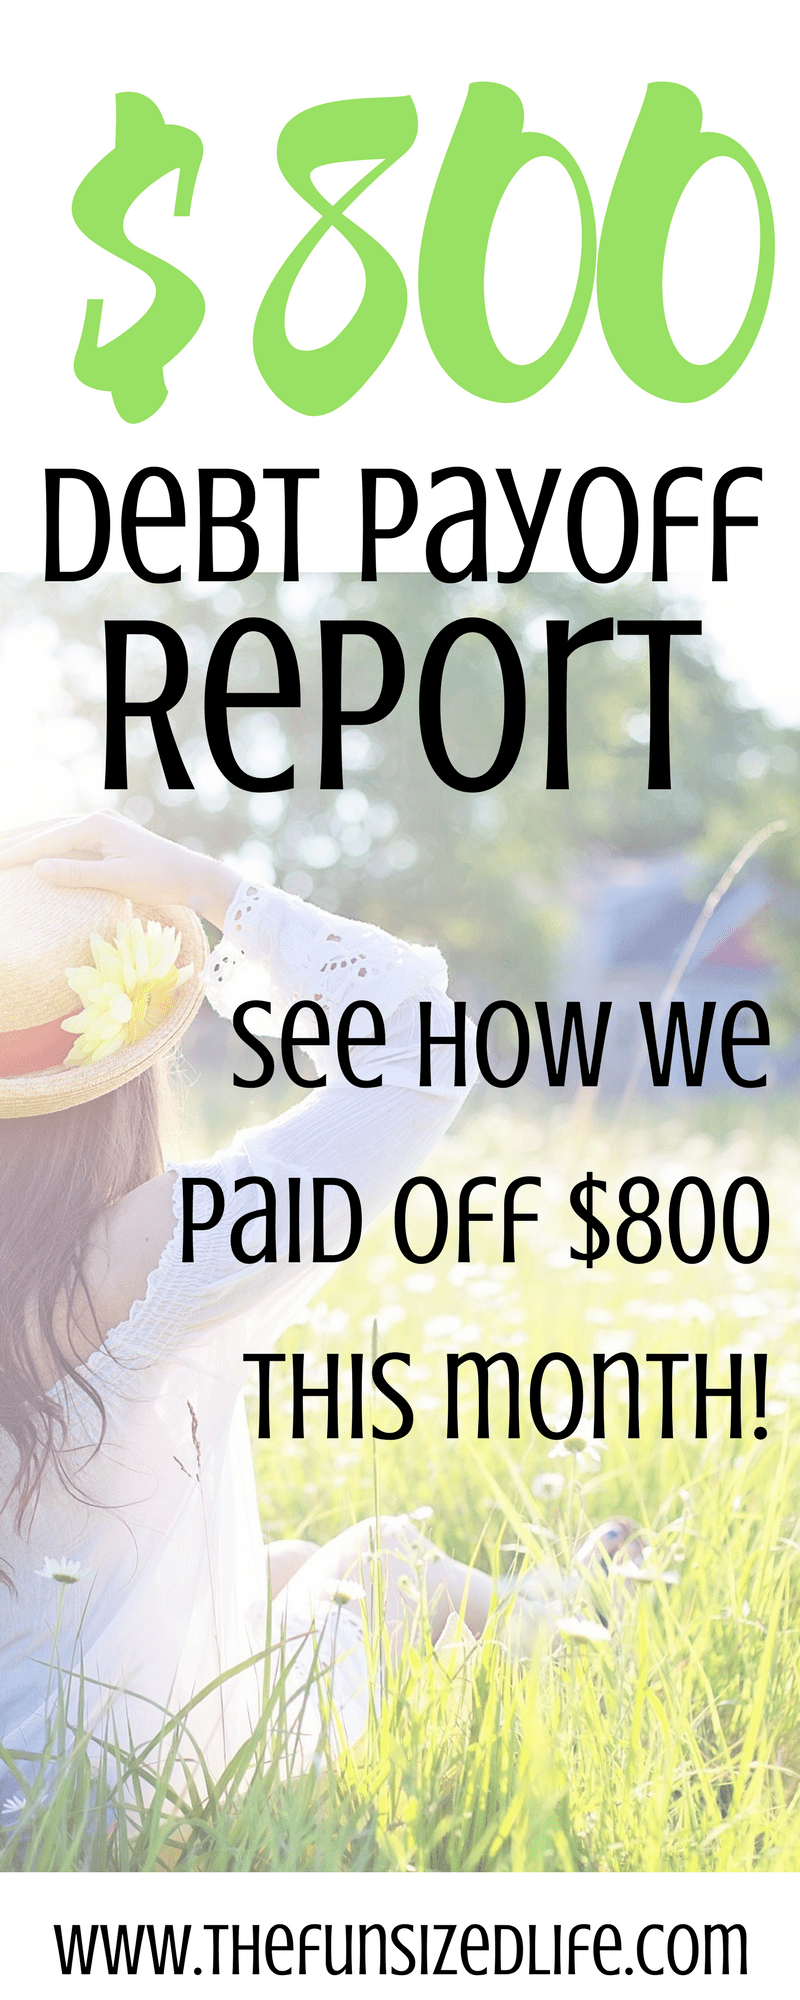 See how we paid off $800 of debt this month!